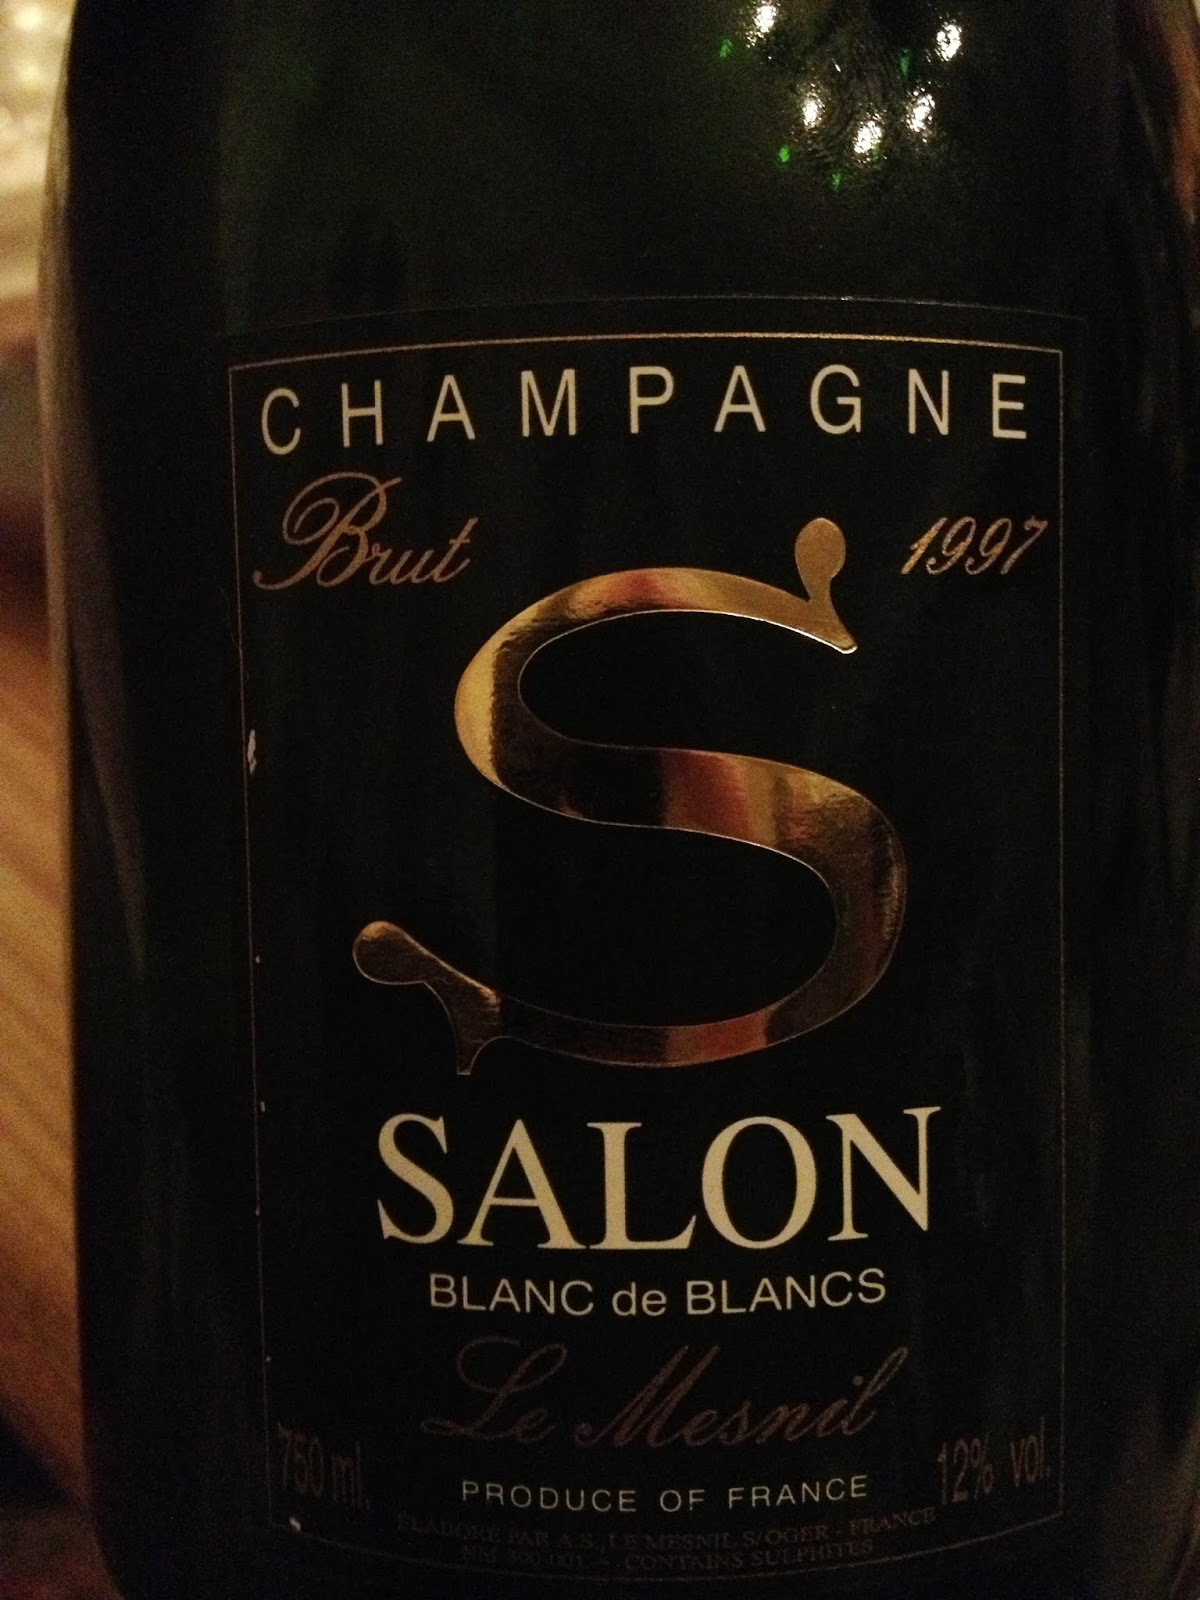 My wines and more 97 salon 04 domaine leroy vega for 1997 champagne salon